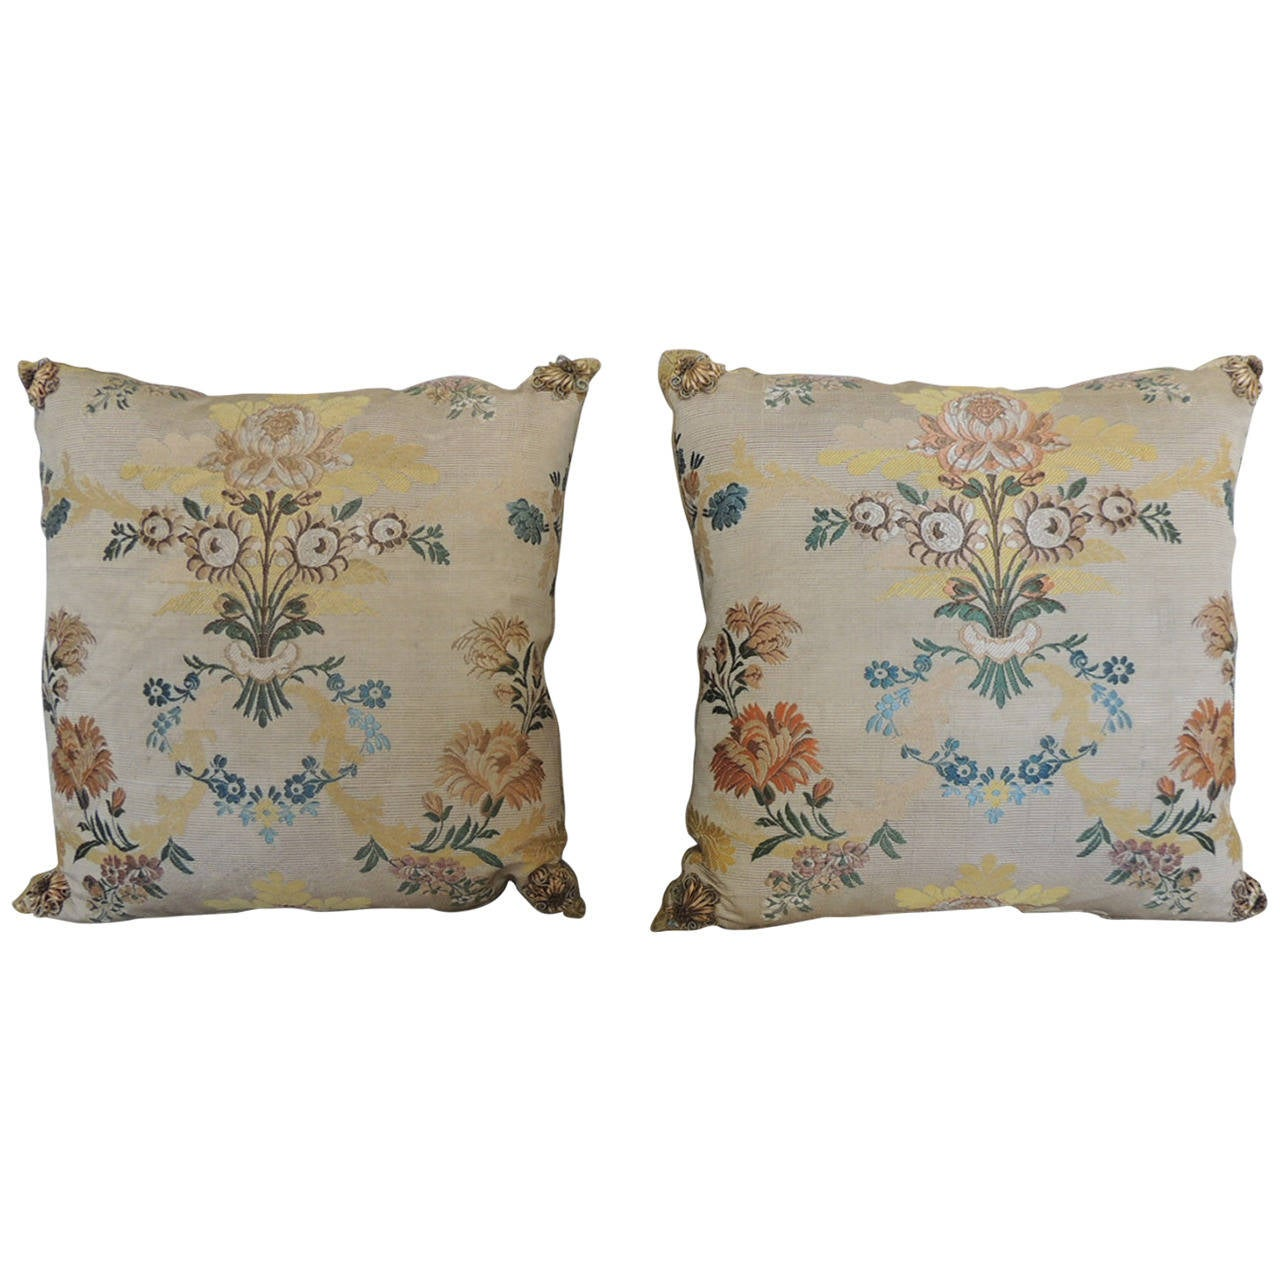 Pair of Antique Silk Brocade Floral Blue Decorative Pillows For Sale at 1stdibs